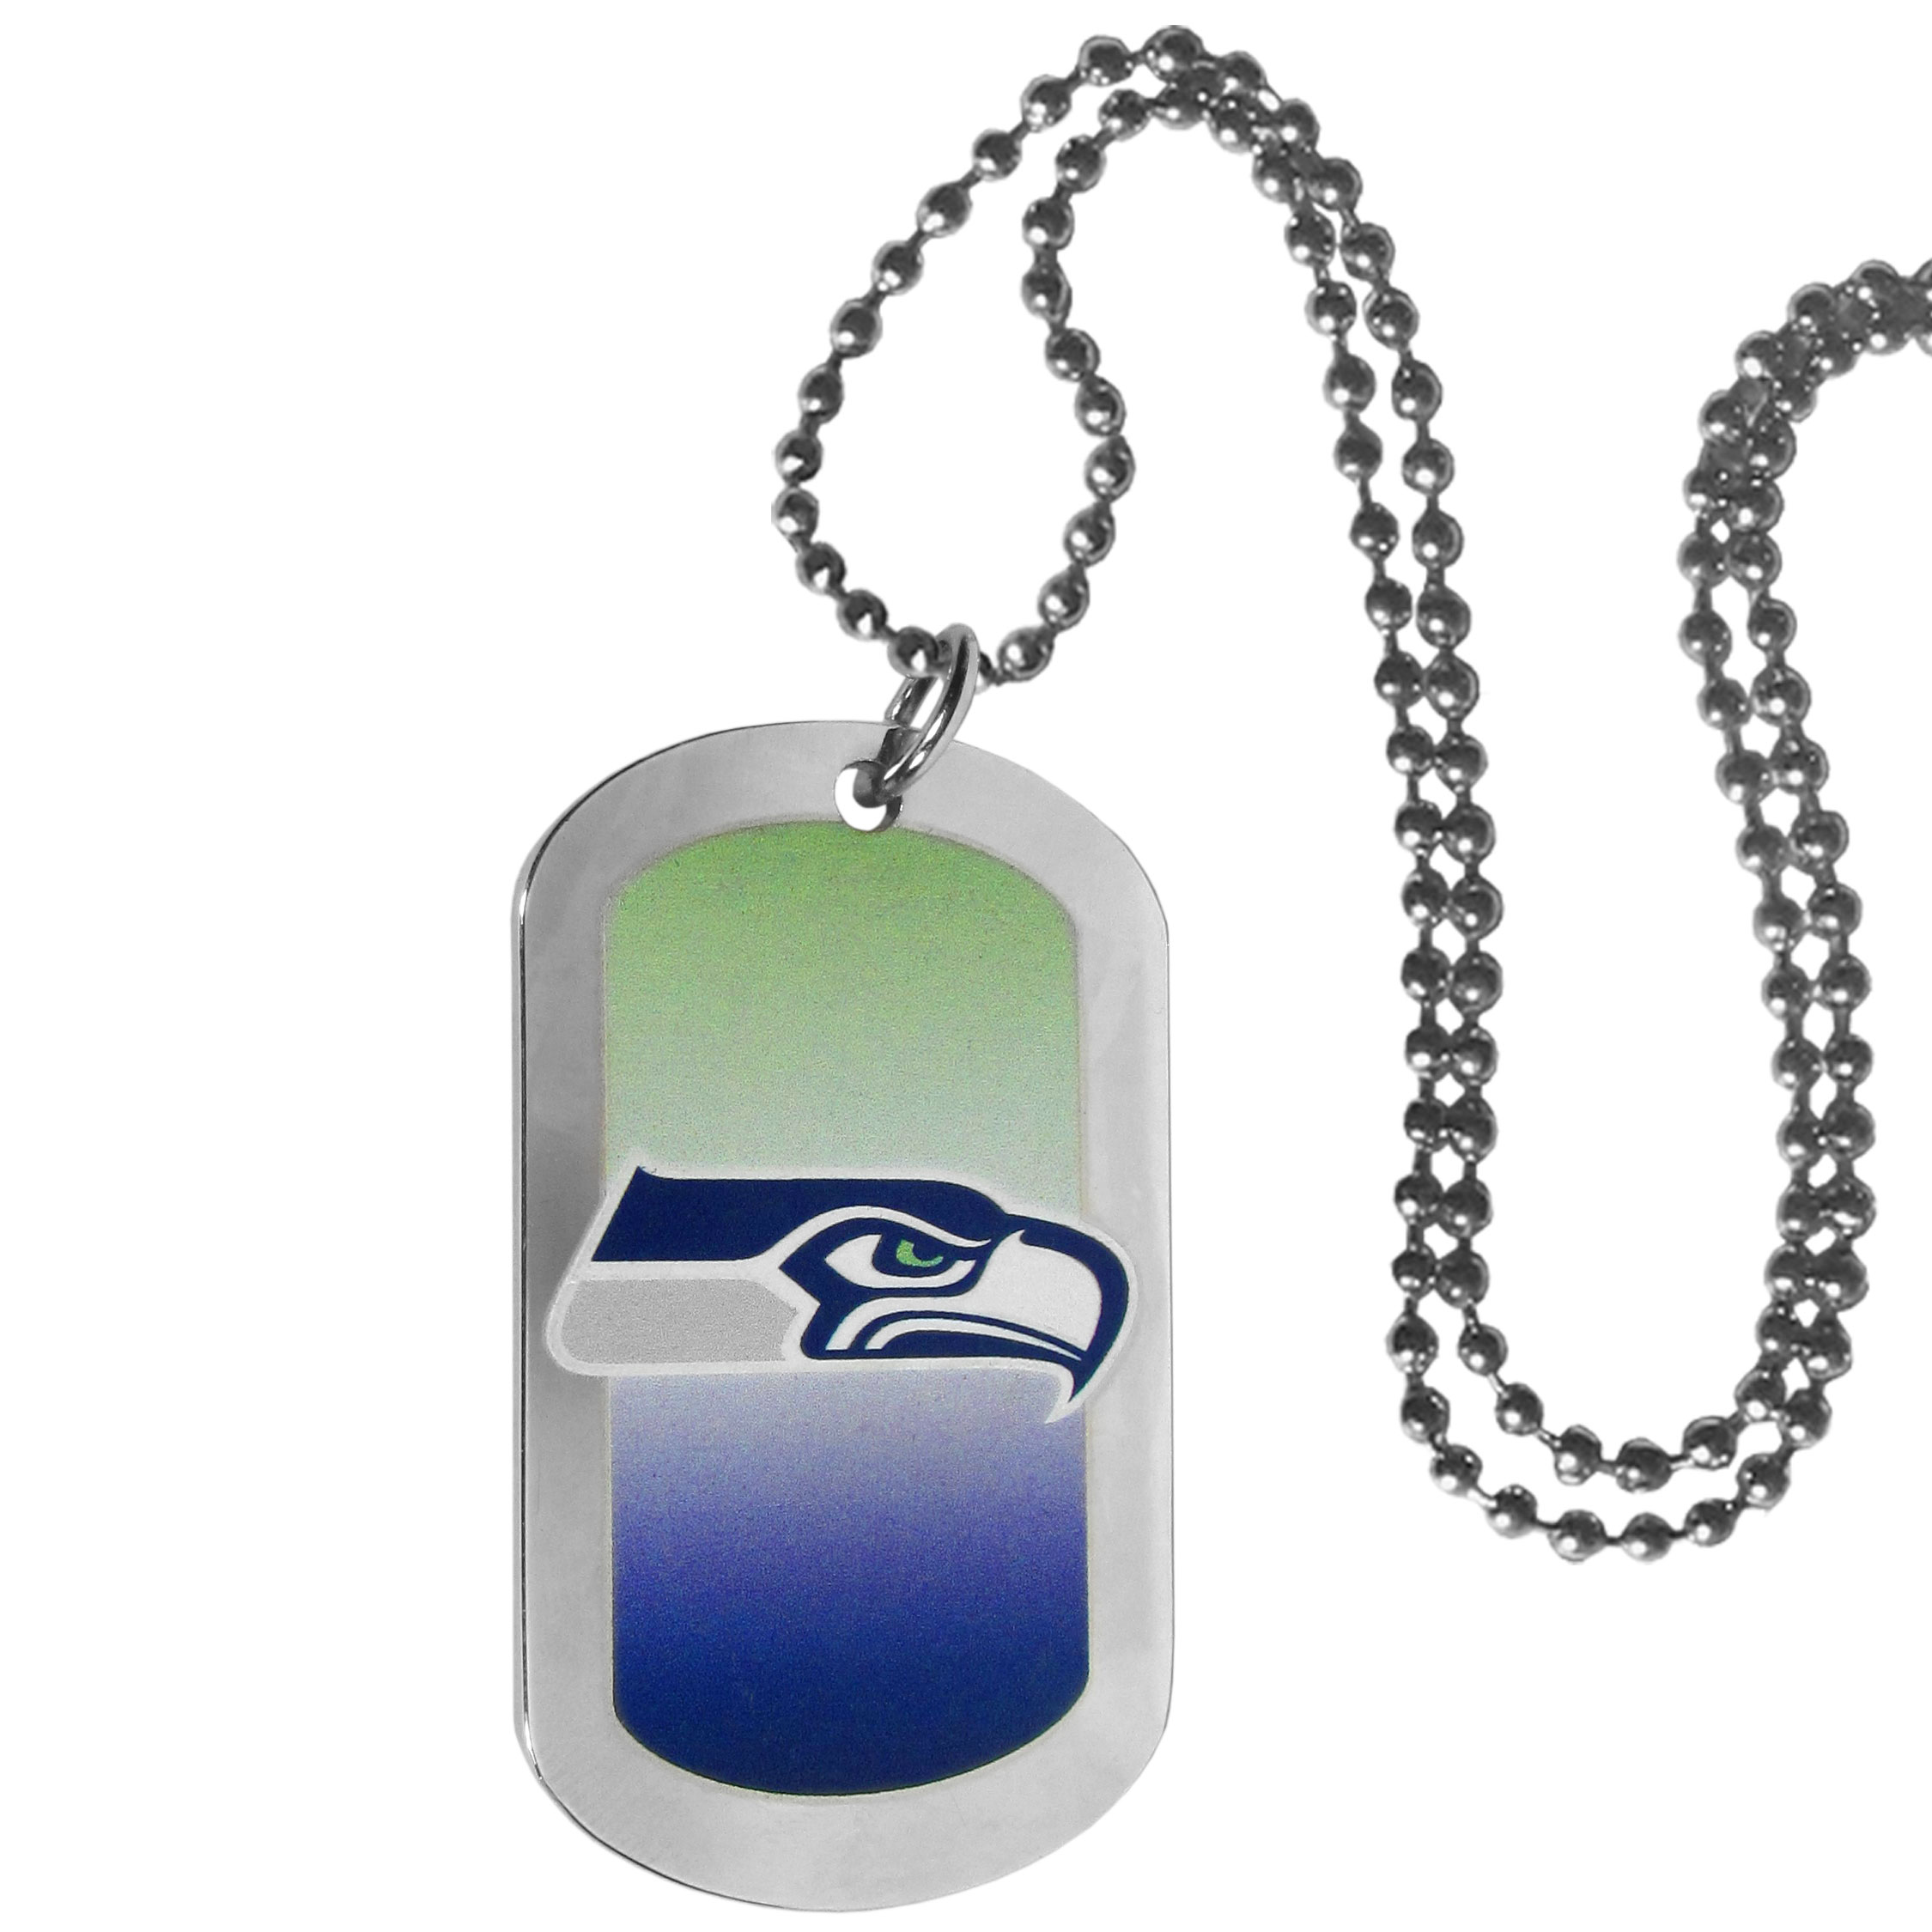 Seattle Seahawks Team Tag Necklace - Dog tag necklaces are a fashion statement that is here to stay. The sporty version of the classic tag features a gradient print in team colors featuring a full color team logo over a high polish tag to create a bold and sporty look. The tag comes on a 26 inch ball chain with a ball and joint clasp. Any Seattle Seahawks would be proud to wear this attractive fashion accessory.